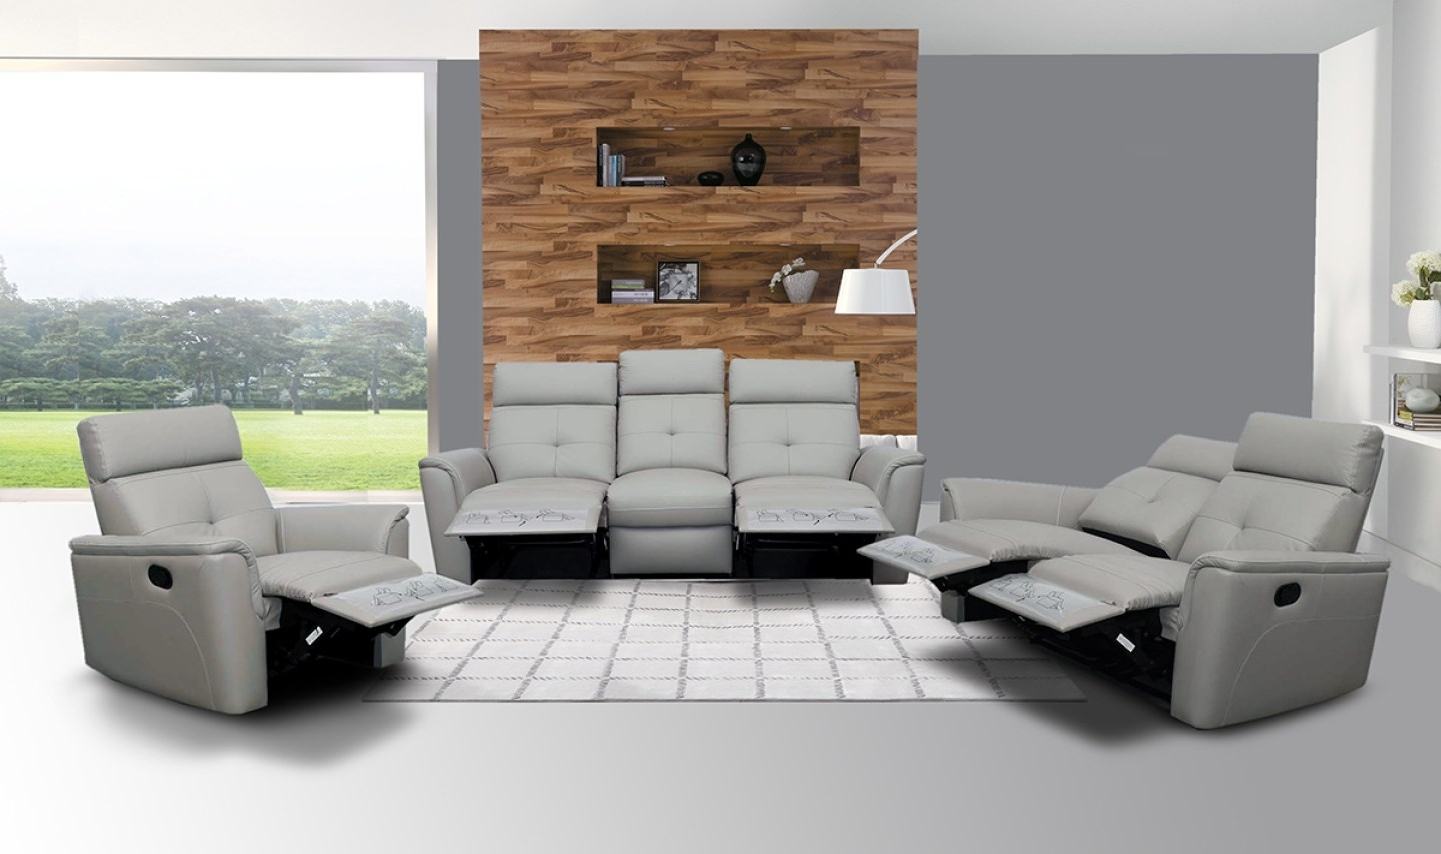 Preferred Sofa : Riveting Modern Leather Reclining Couch Thrilling Throughout Modern Reclining Leather Sofas (Gallery 20 of 20)